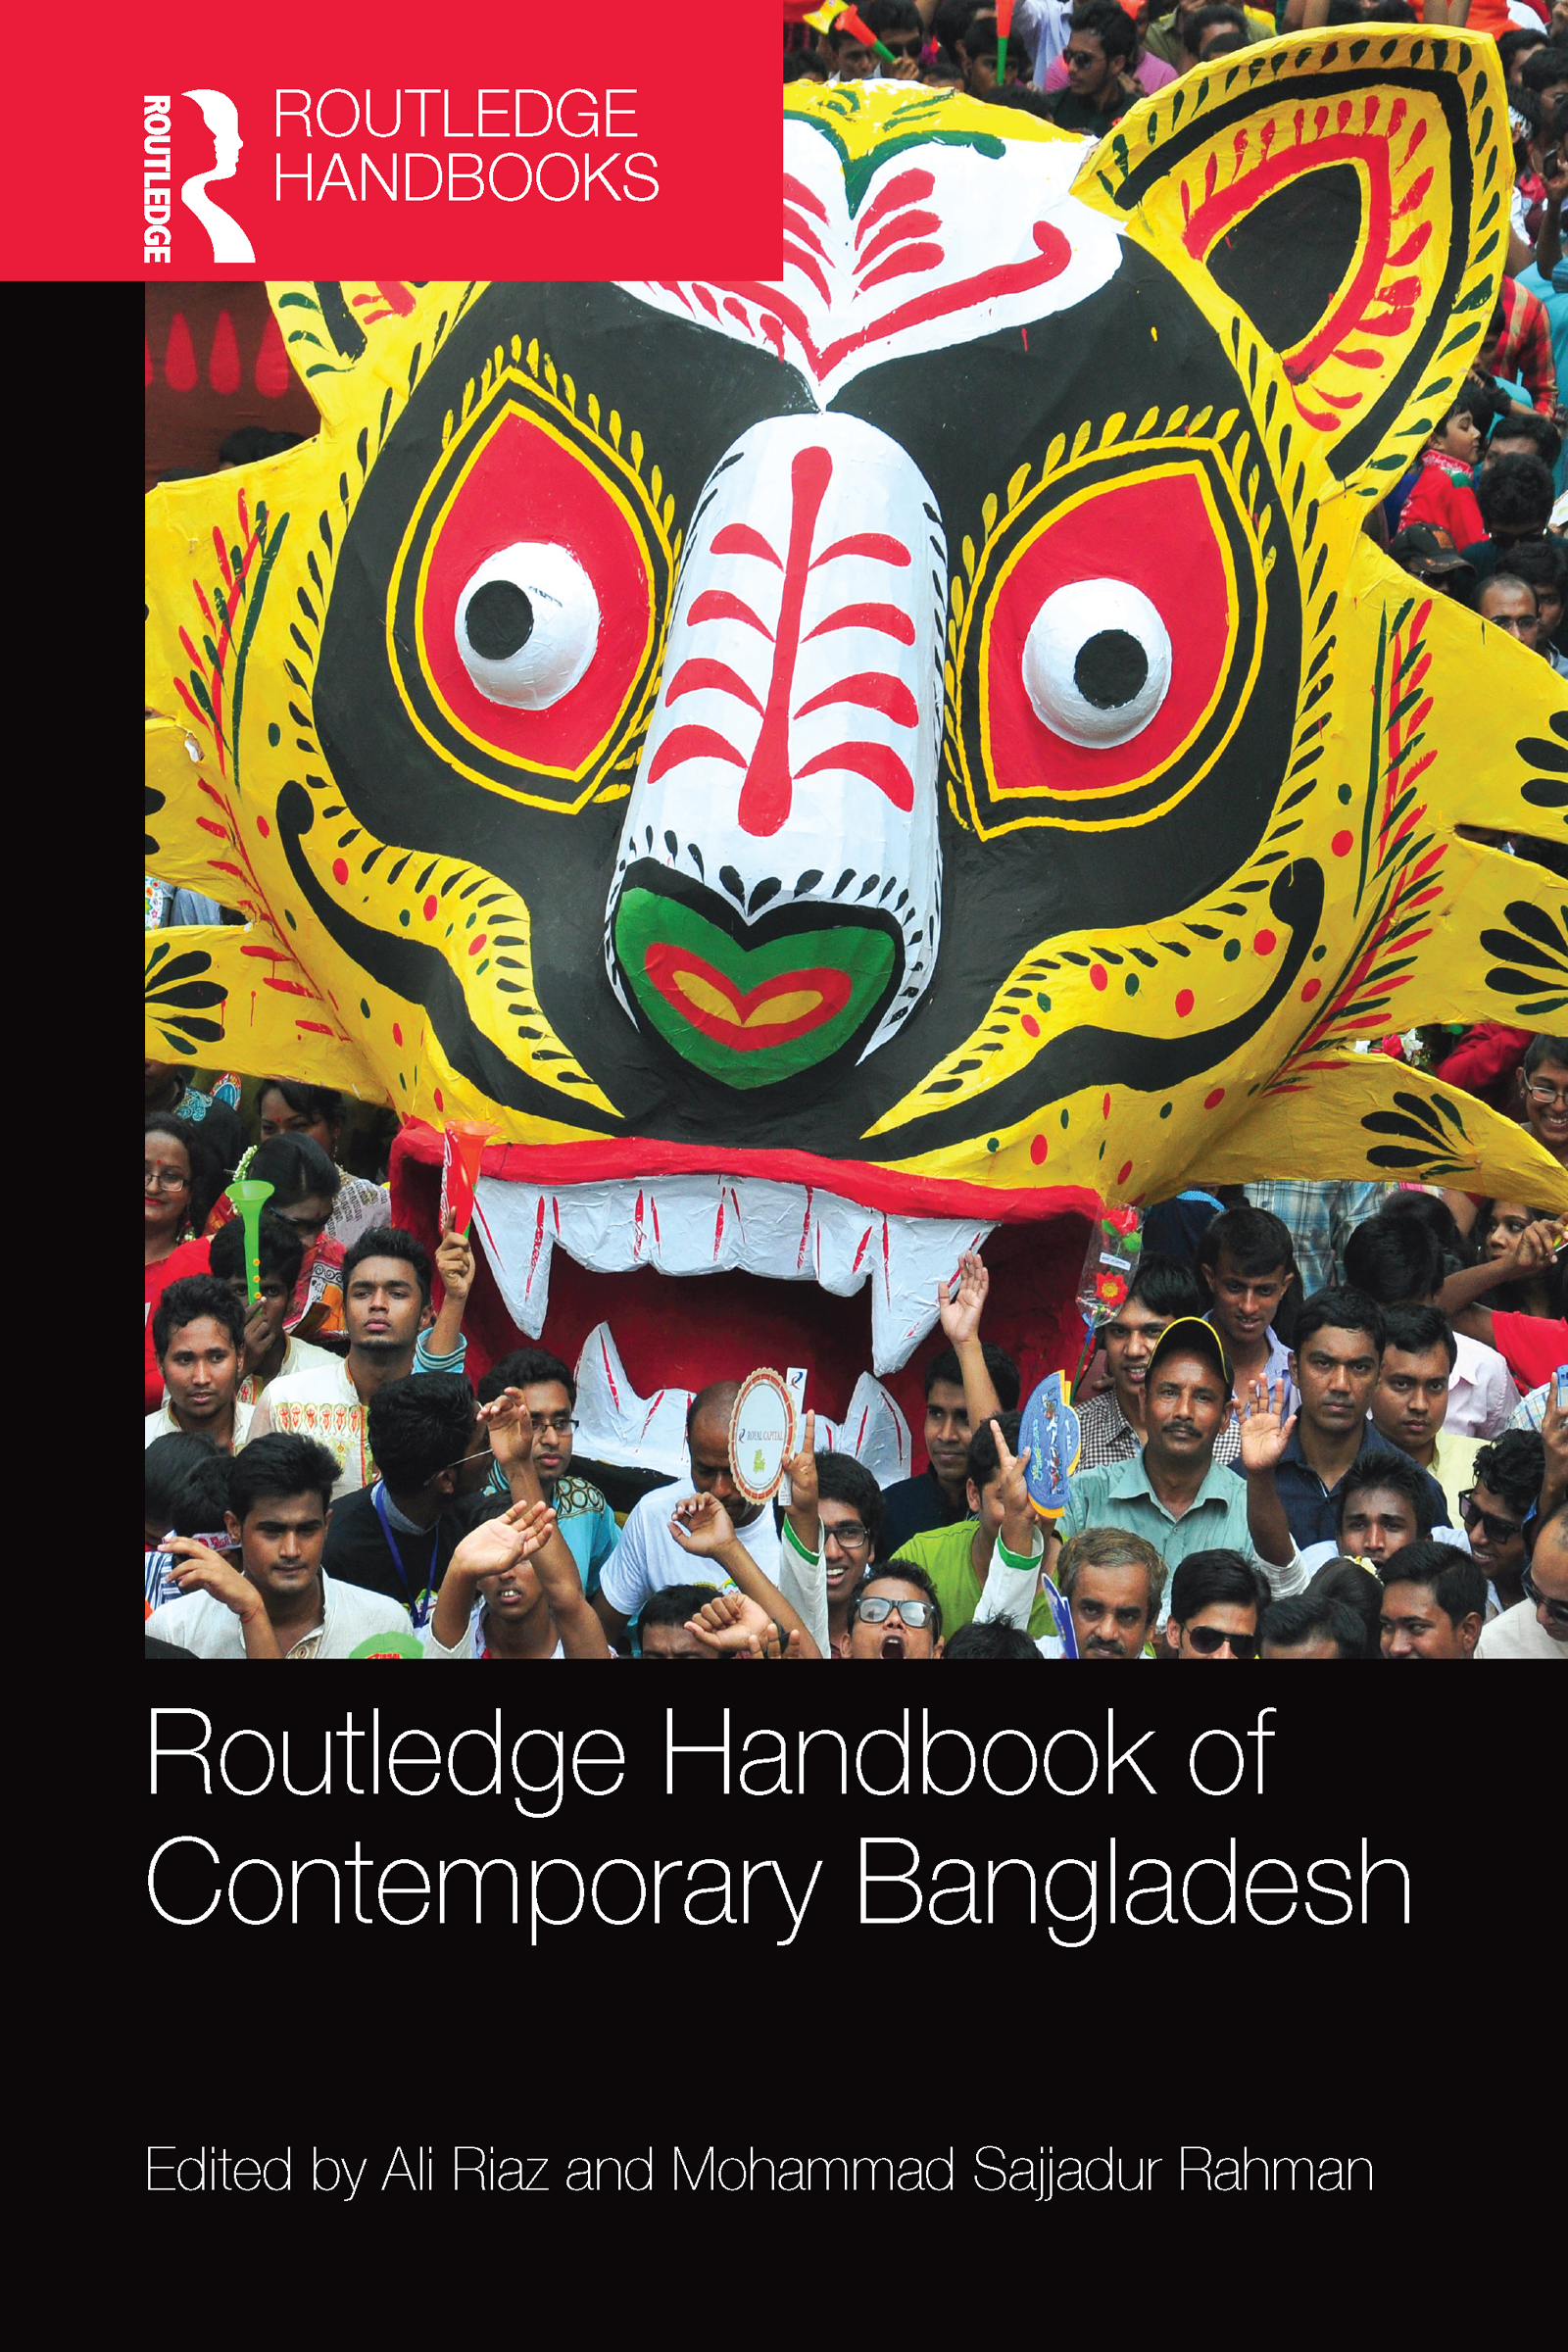 Routledge Handbook of Contemporary Bangladesh